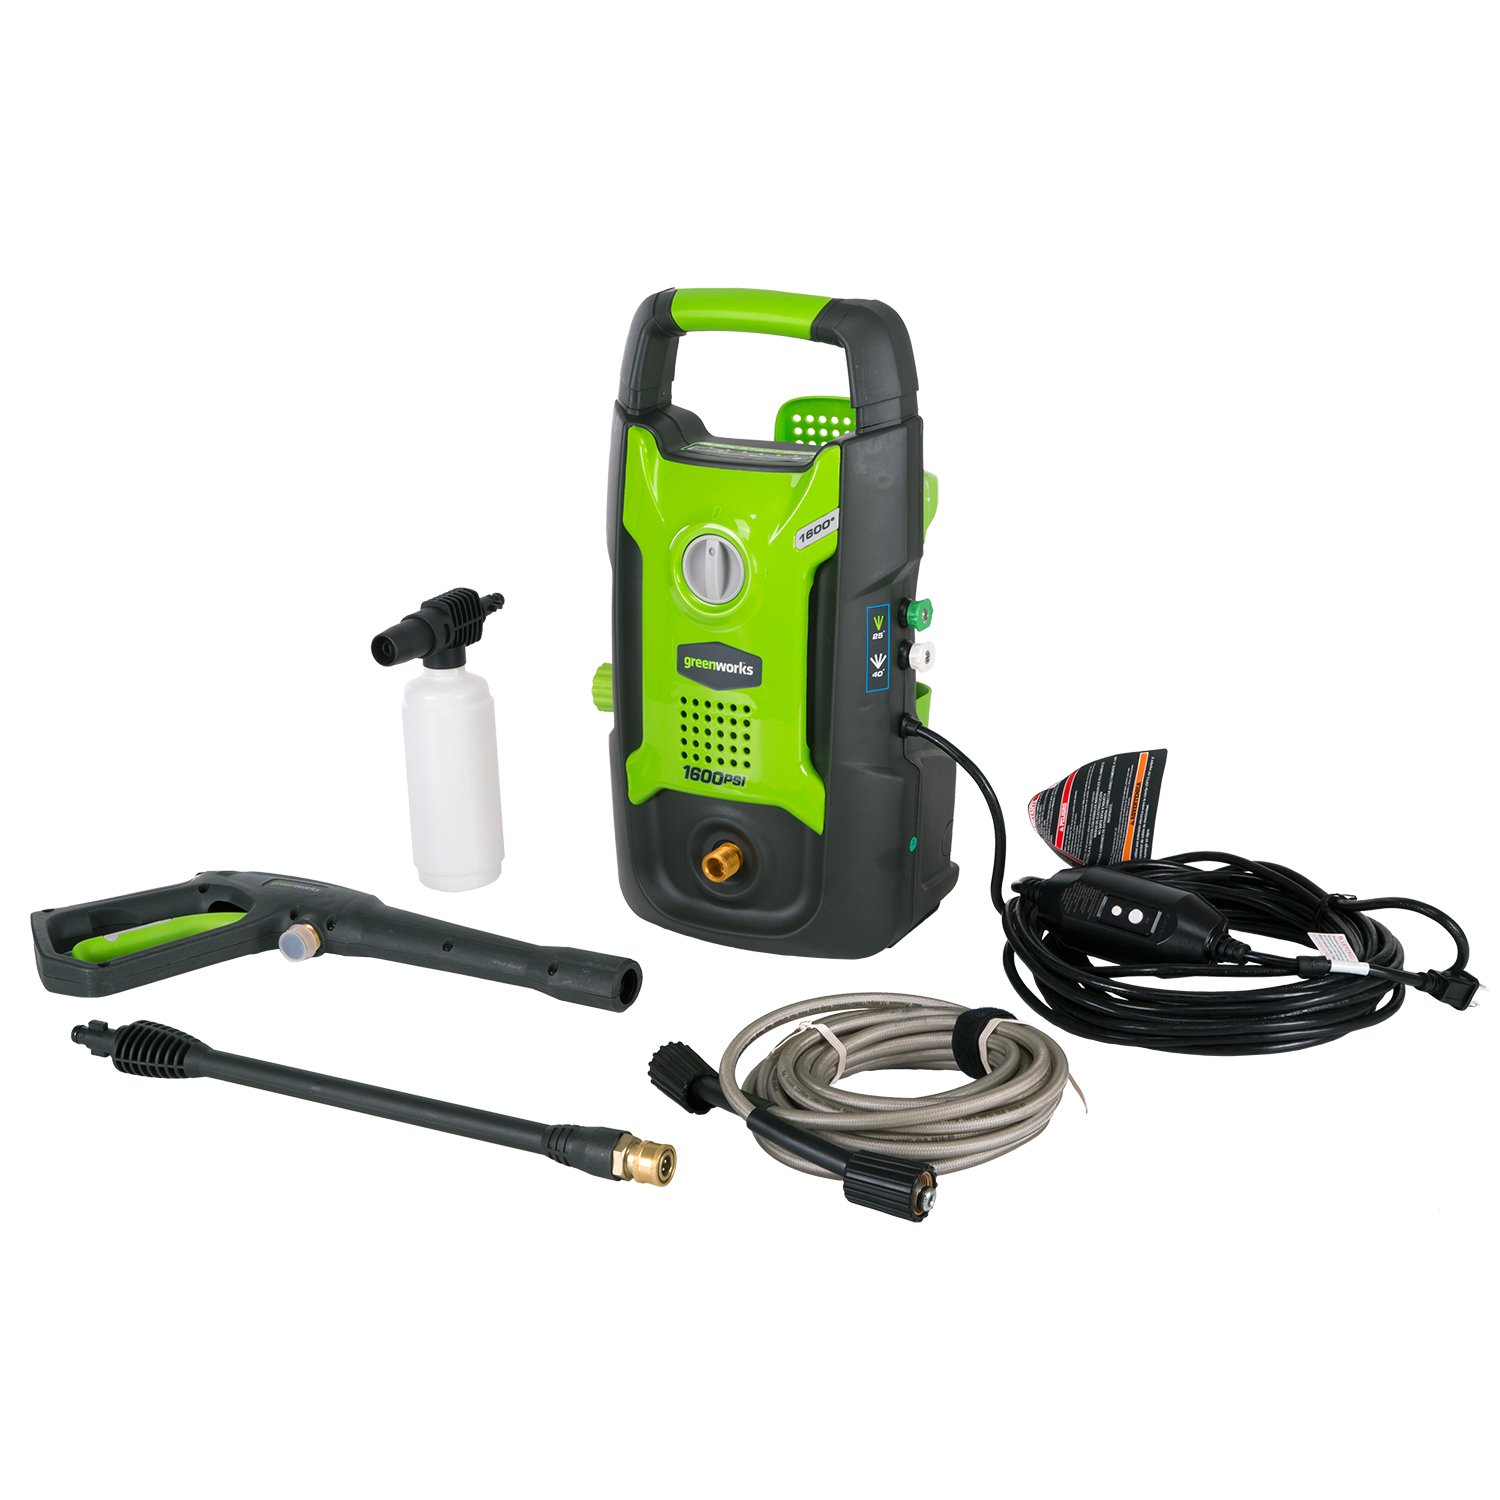 The Best Electric Pressure Washers For Your Garden: Reviews & Buying Guide 8